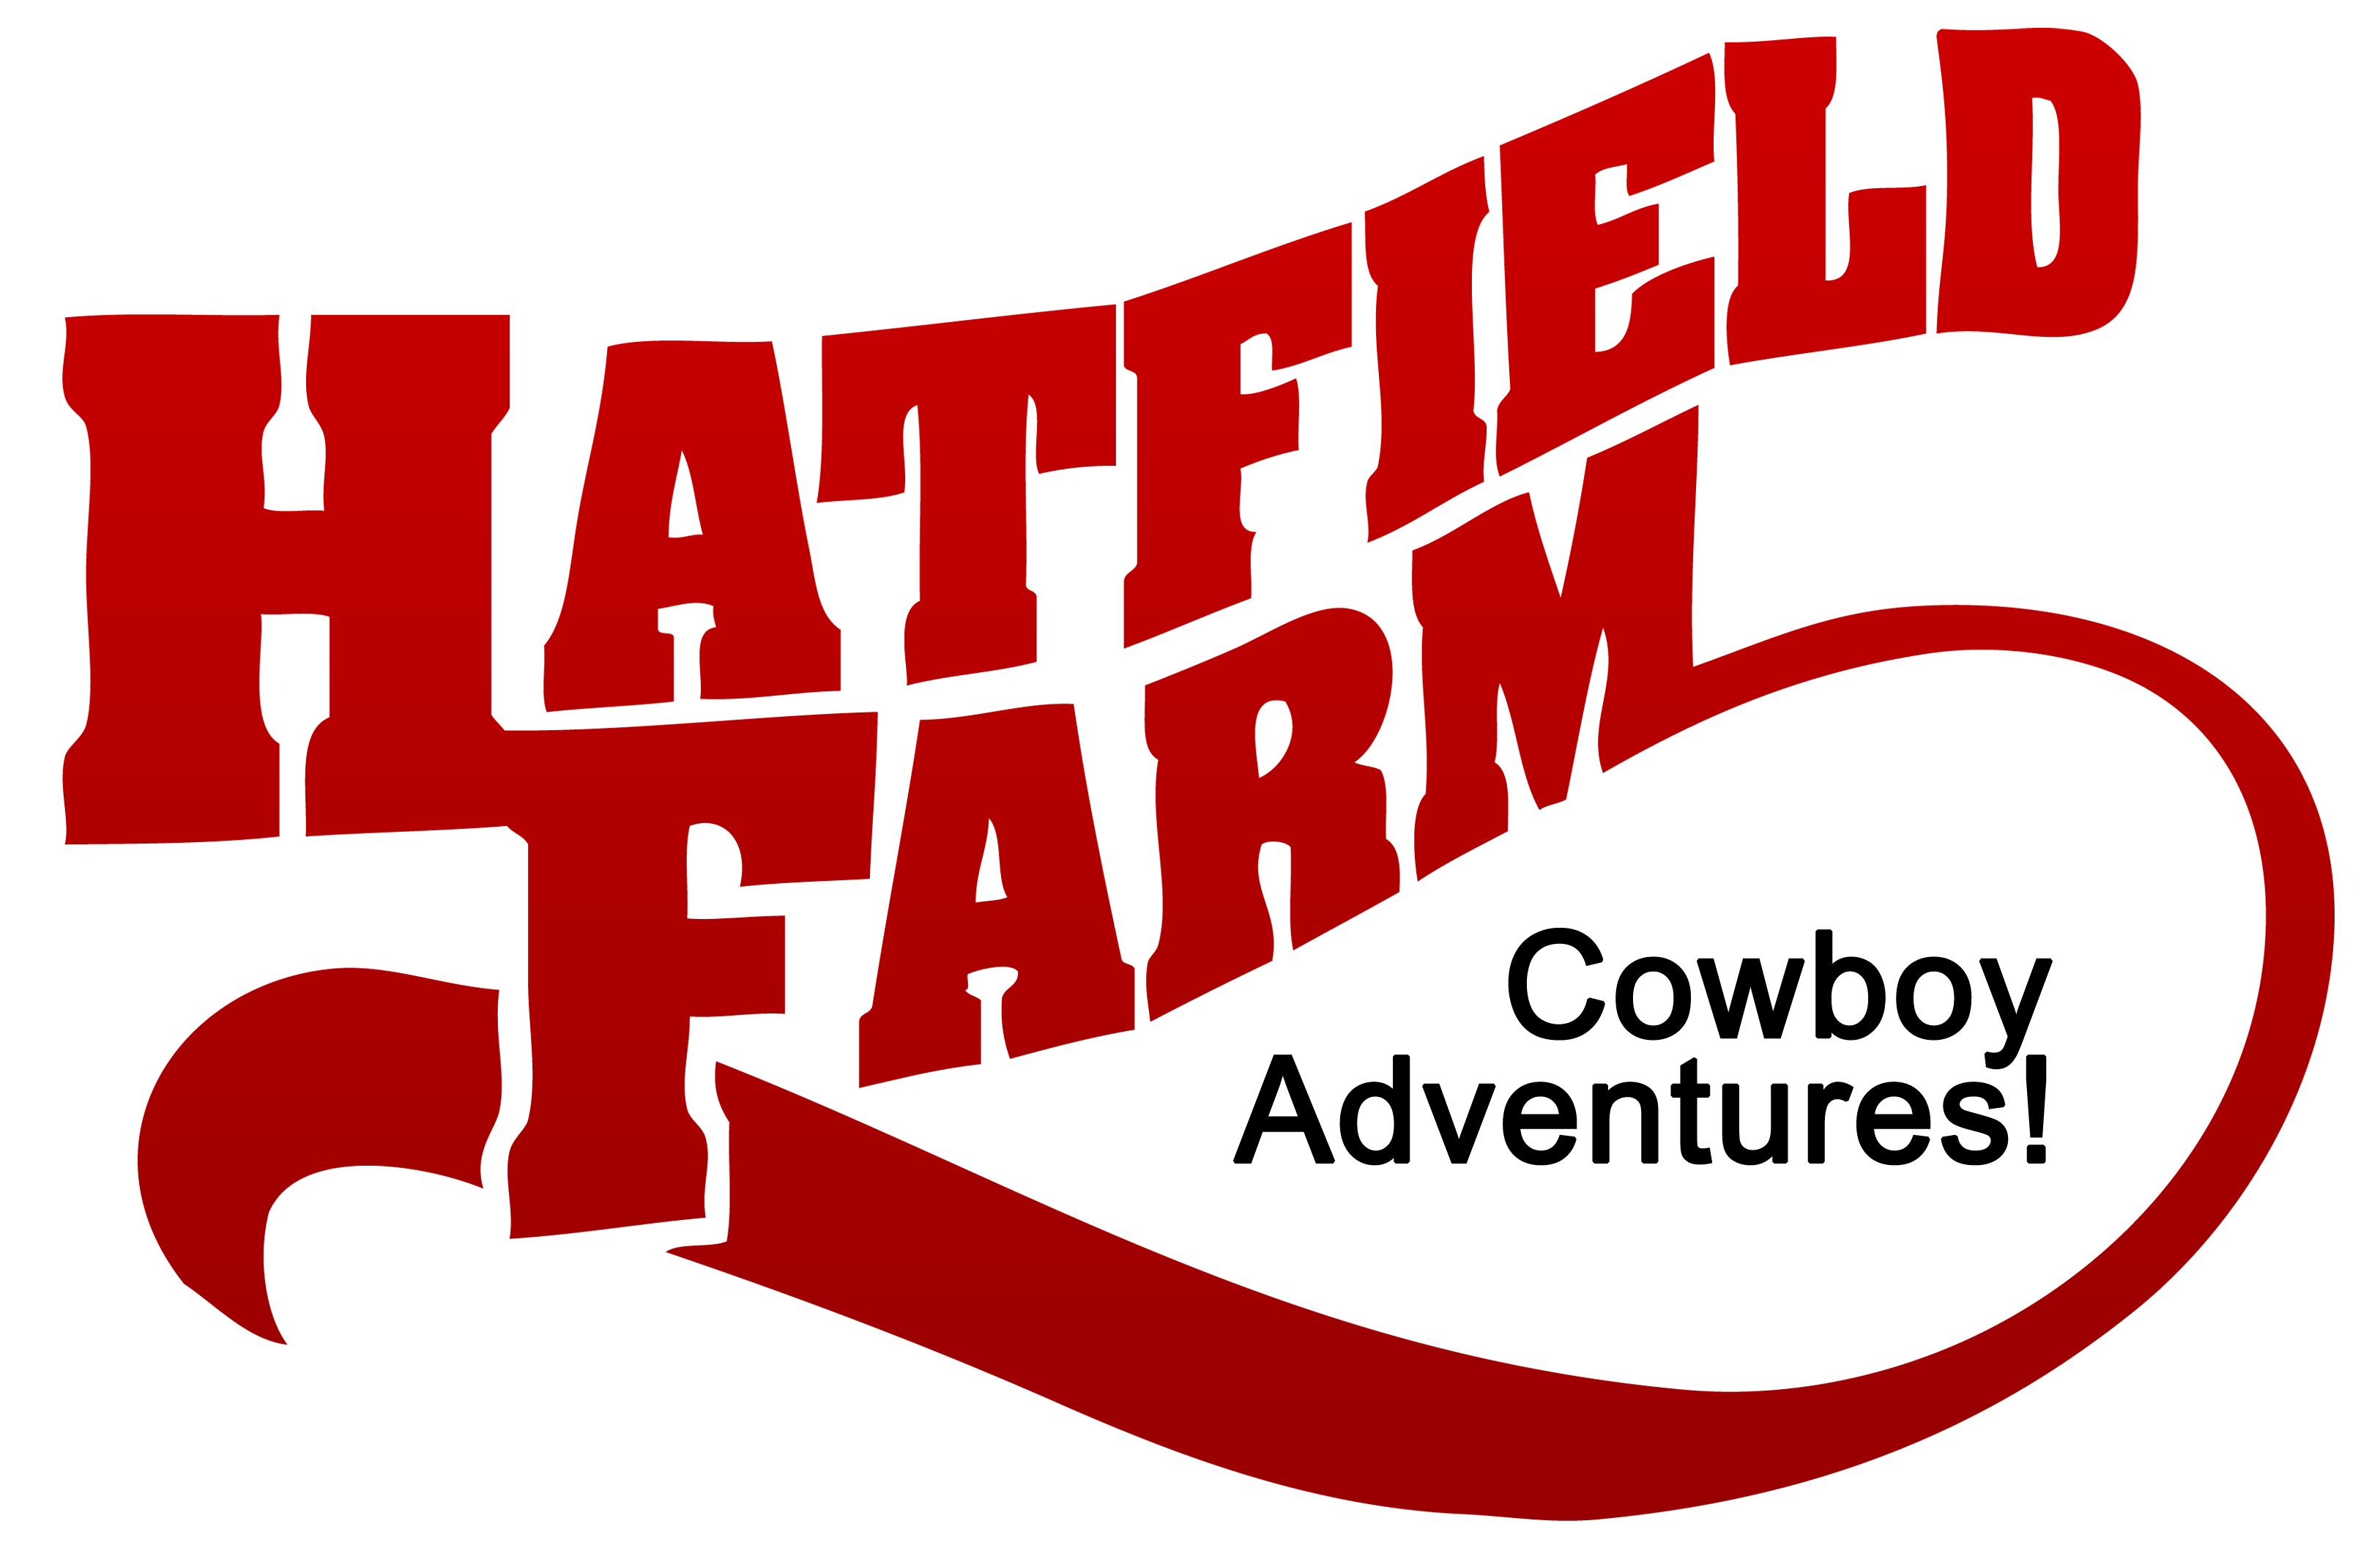 Hatfield Farm